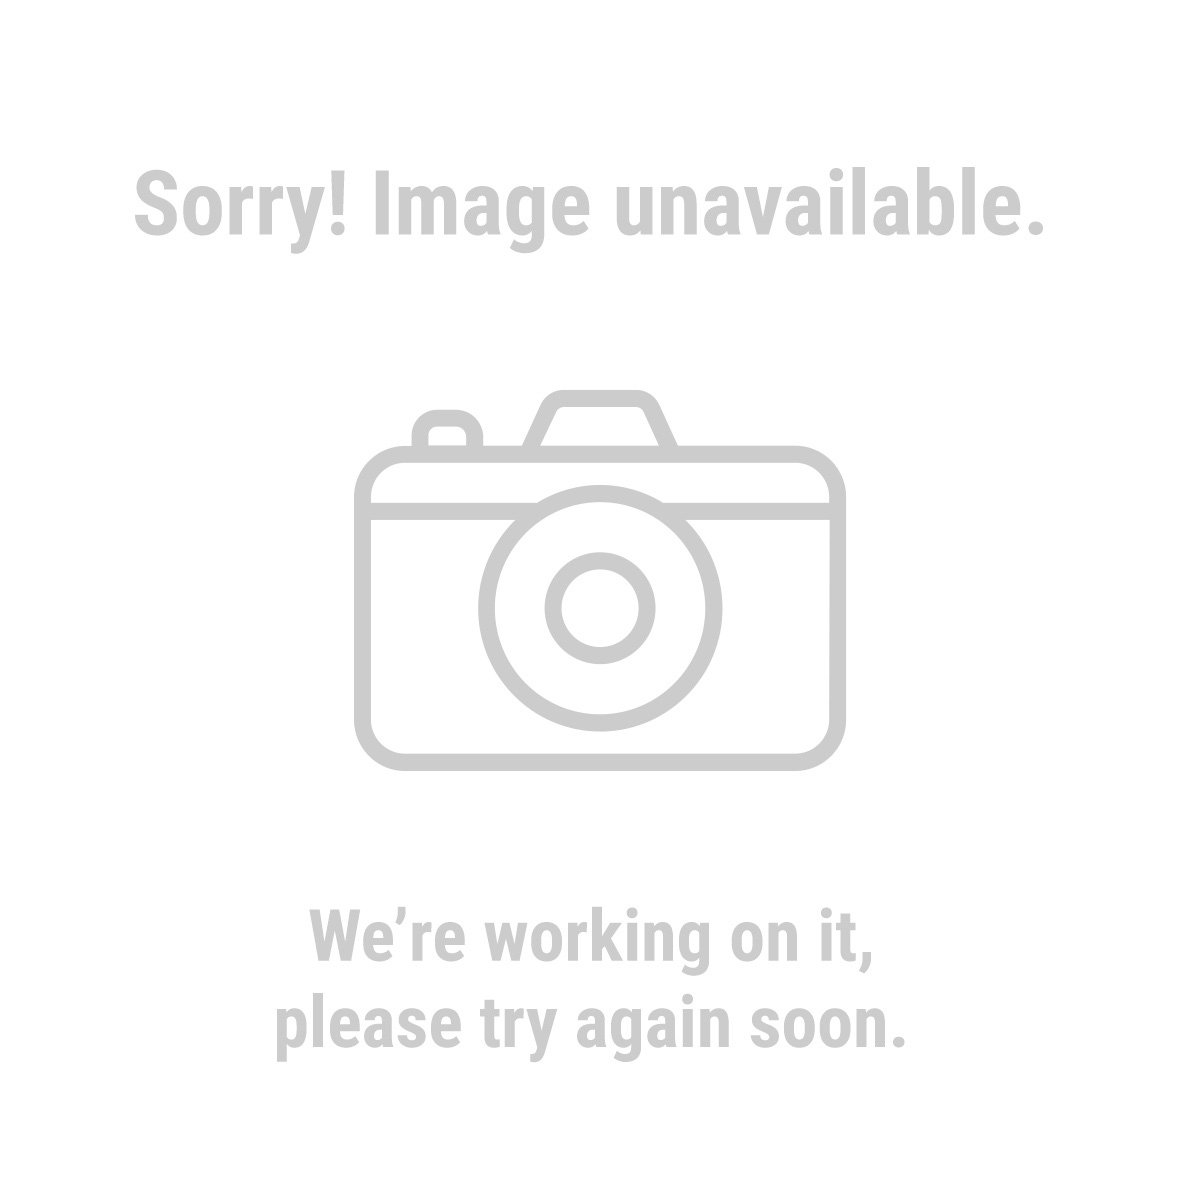 61650 3-1/2 in. Medium Duty Swivel Caster